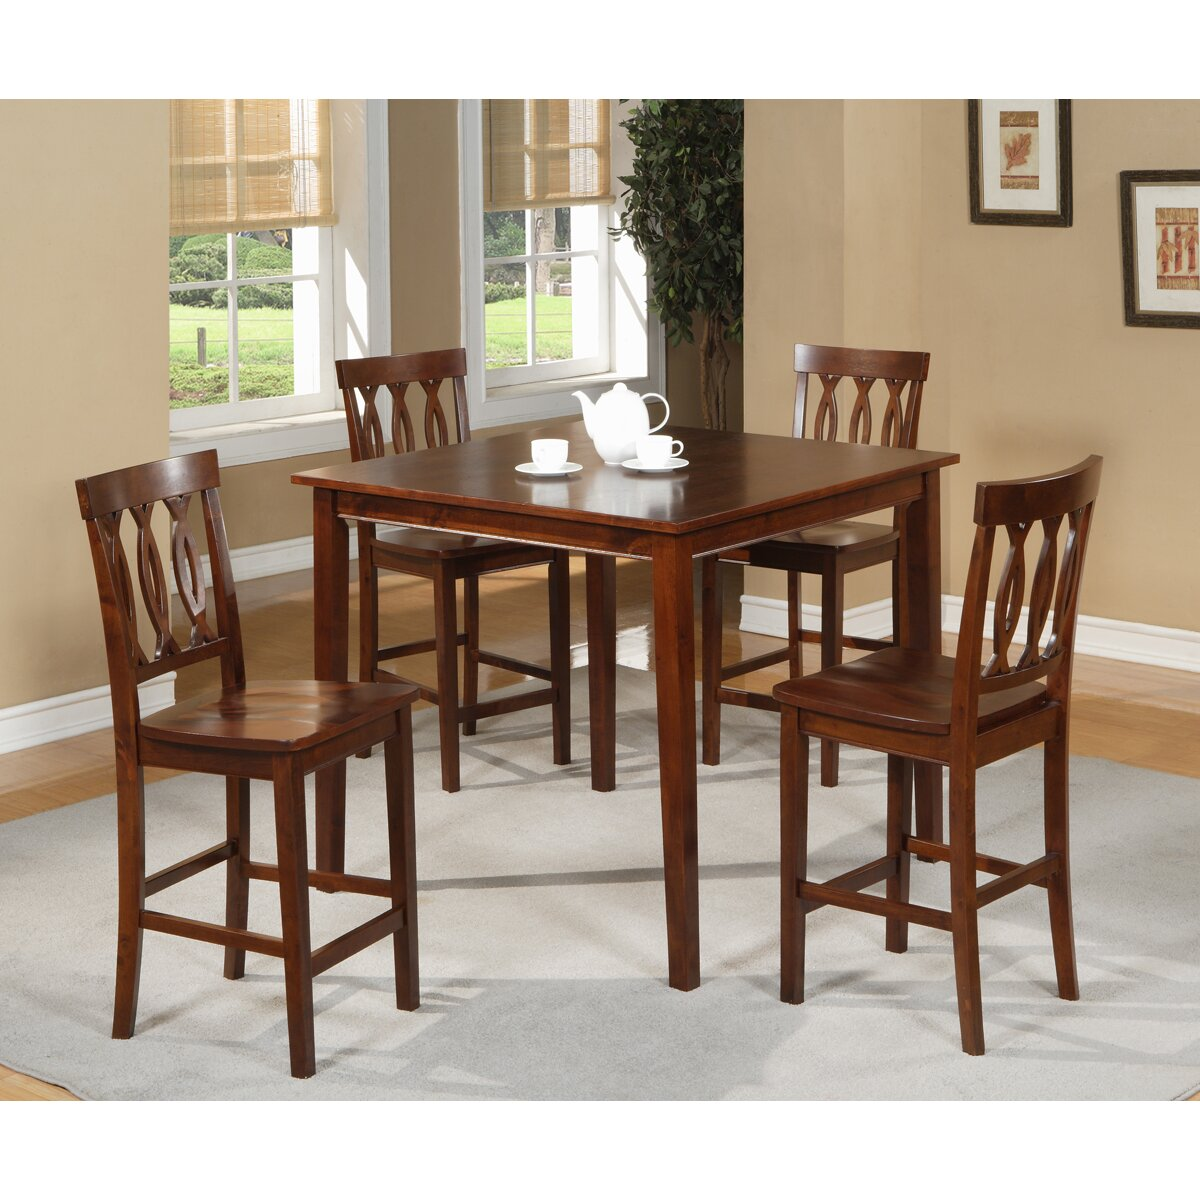 Williams import co 5 piece counter height dining set for 5 piece dining set